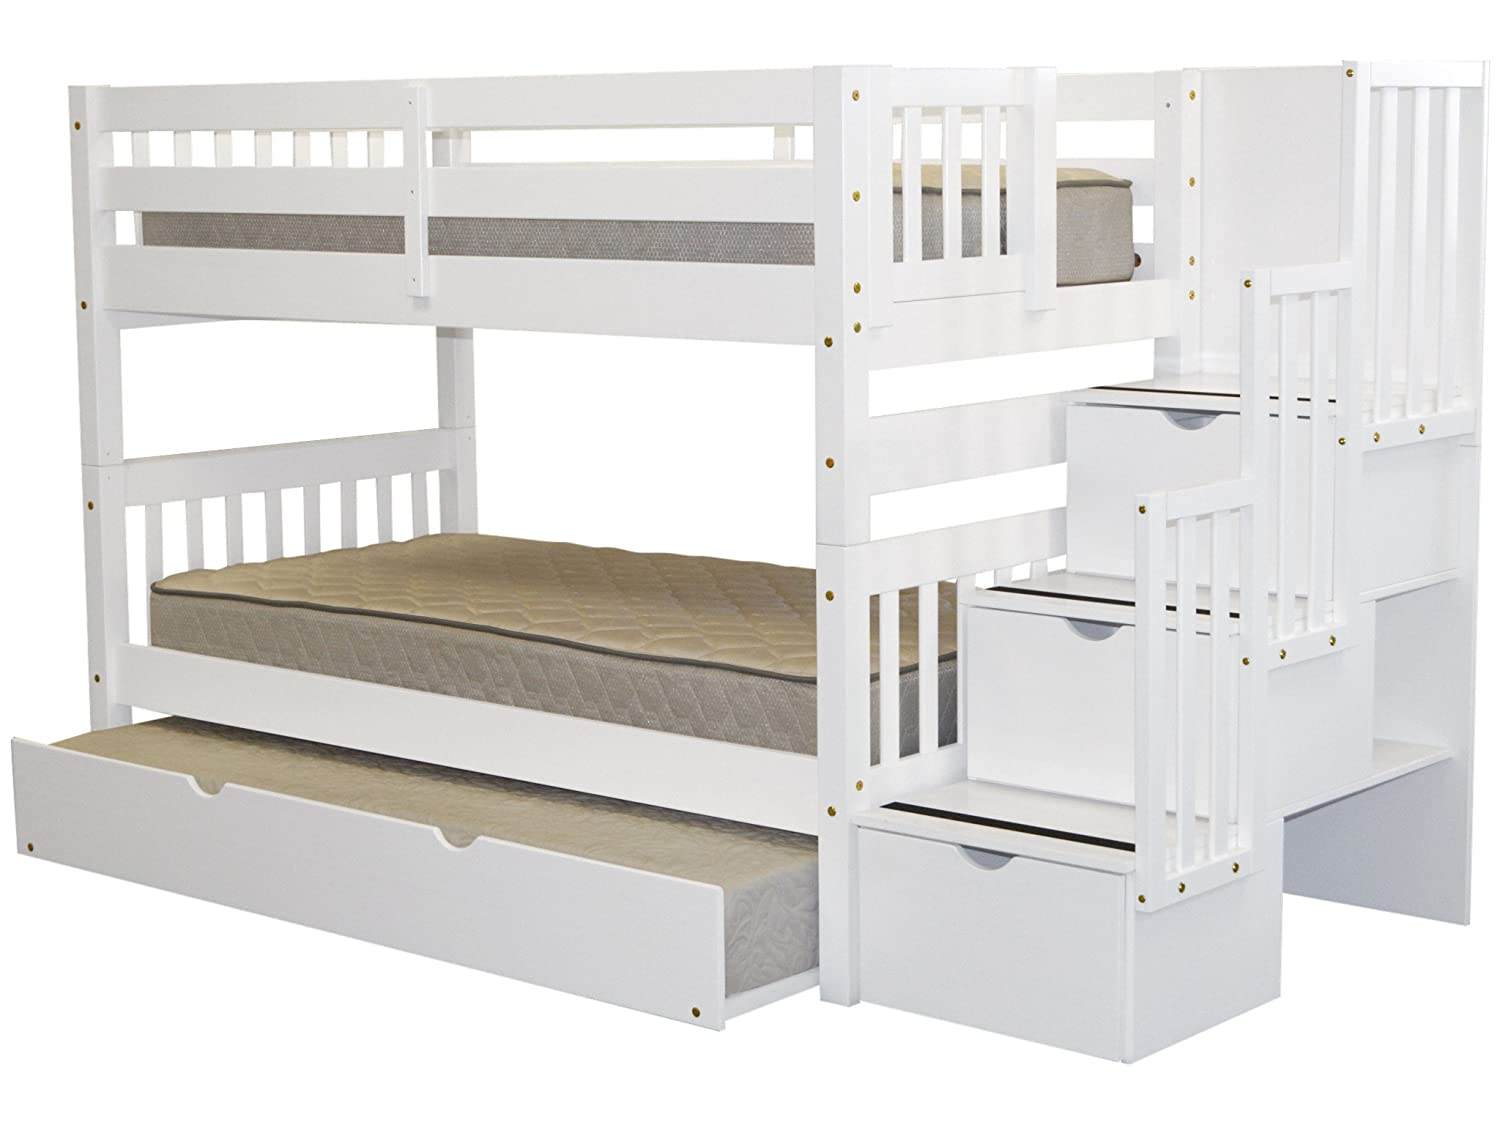 Bedz King Stairway Bunk Bed Twin over Twin with 3 Drawers in the Steps and a Twin Trundle - White